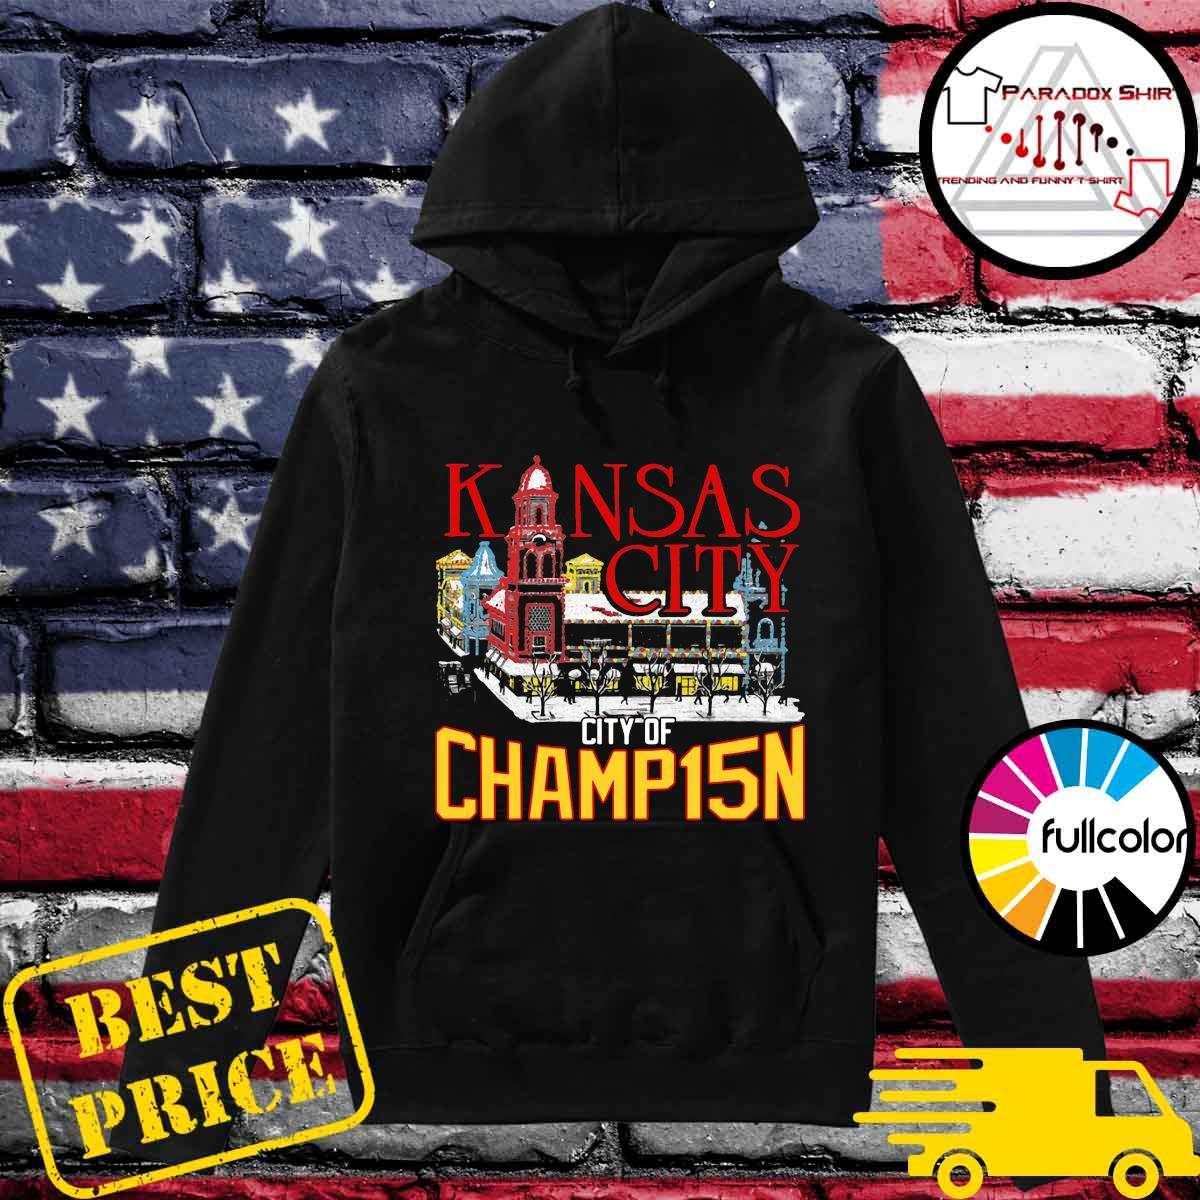 Kansas City City Of Champ15n Shirt Hoodie